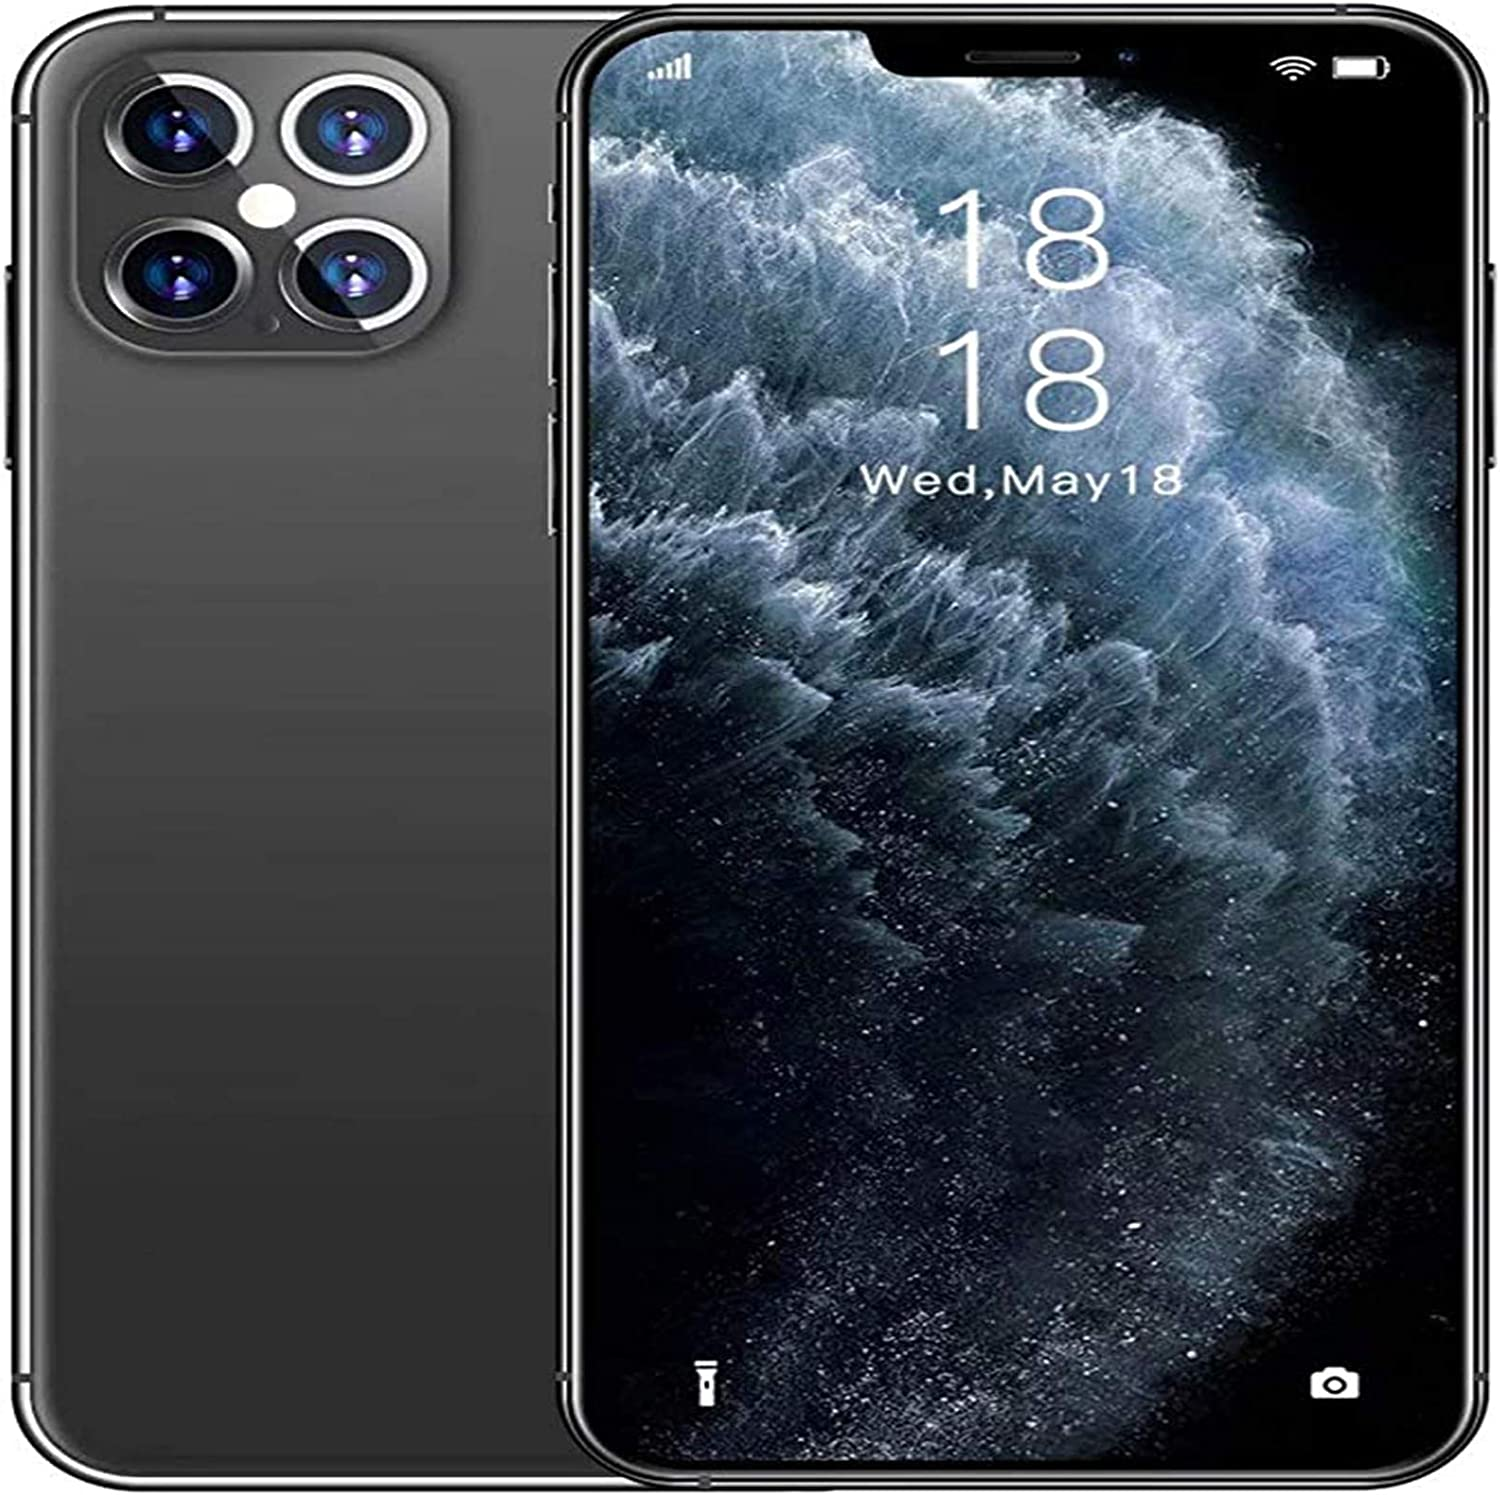 I12promax Smart Phone 6.7-inch Large Screen Face Unlock 2GB+16GB Resolution 7201560 Pixels, Mobile Phone 8 Million Camera Face Set to Unlock The Phone, with WiFi/BT/FM/GPS Always Stick to succe